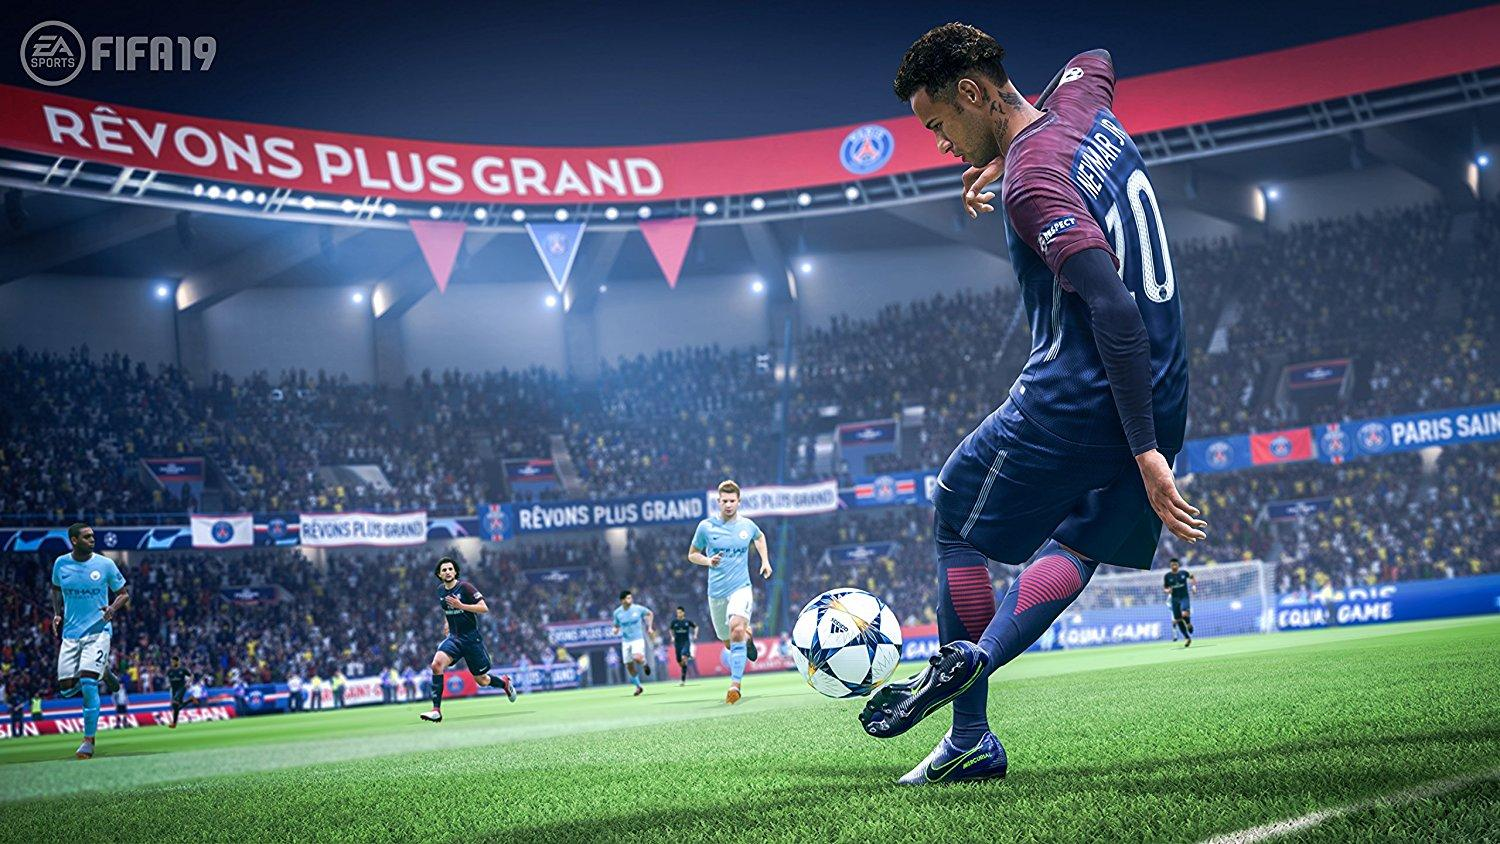 The PlayStation Store crashed as fans aimed to download the Fifa 19 demo